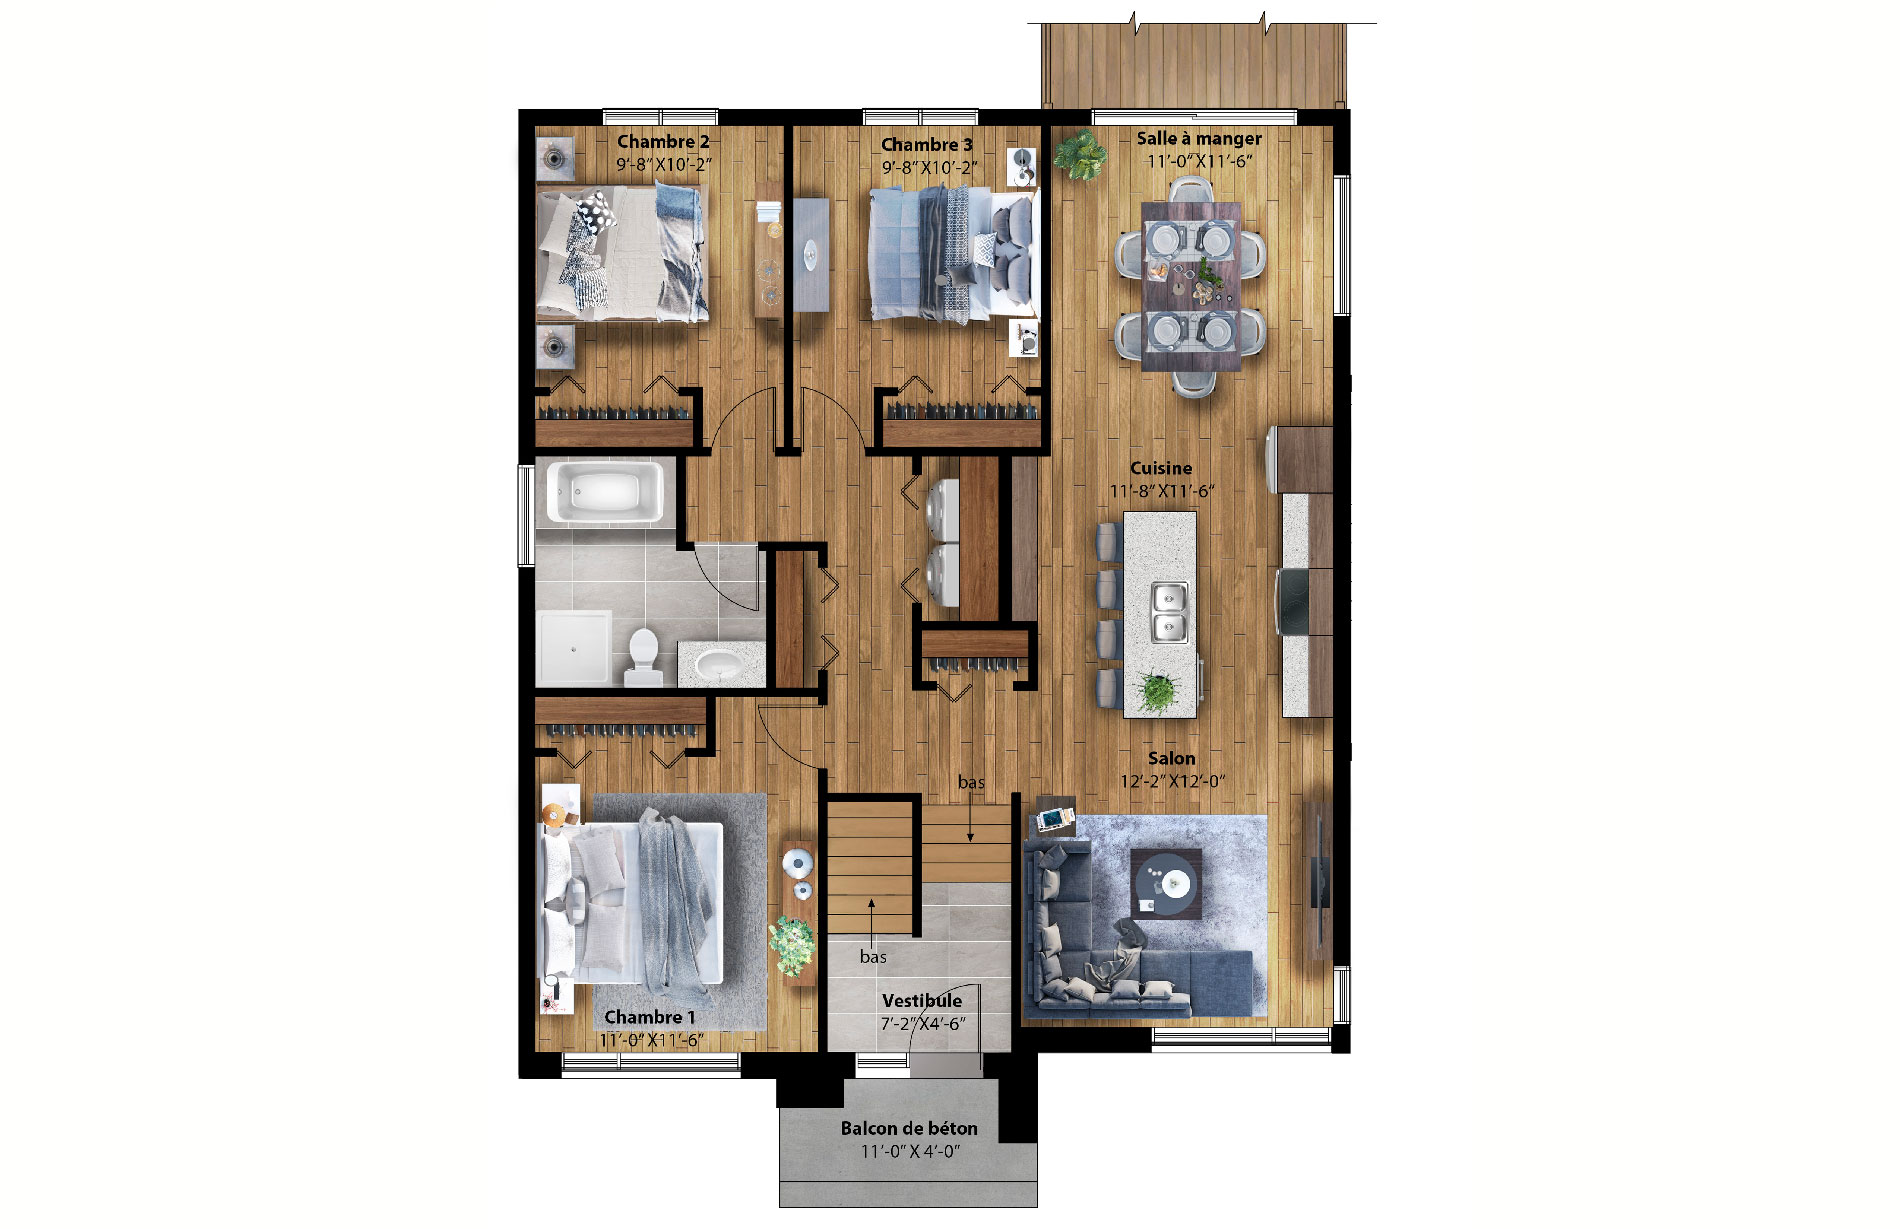 Pynta-Plancher-1-option-3-chambres